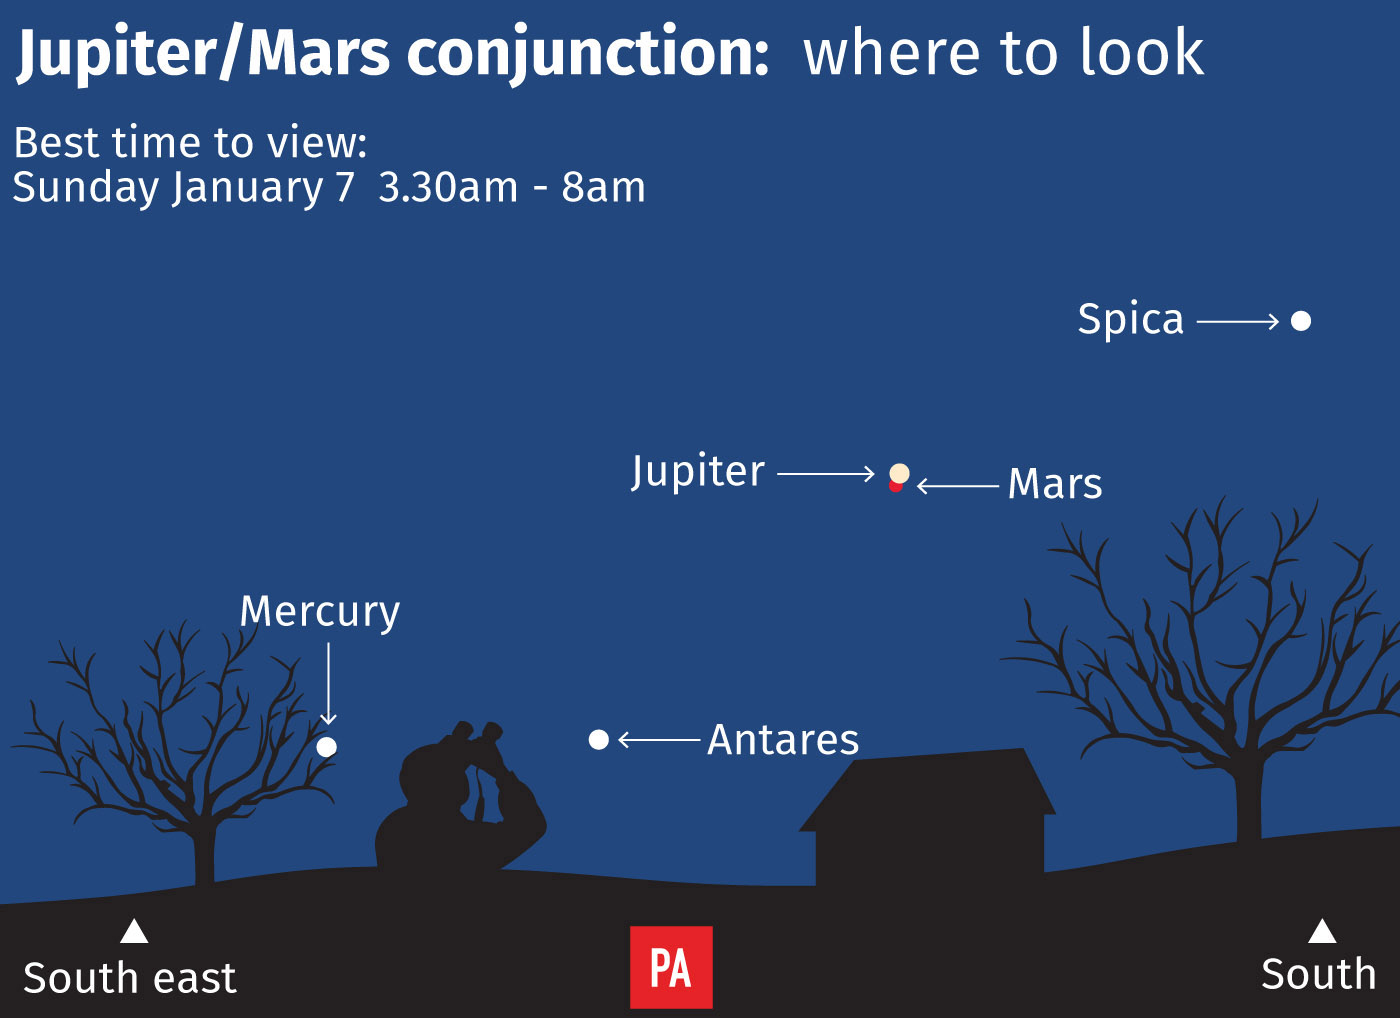 Jupiter and Mars will appear side-by-side in the sky on Sunday.